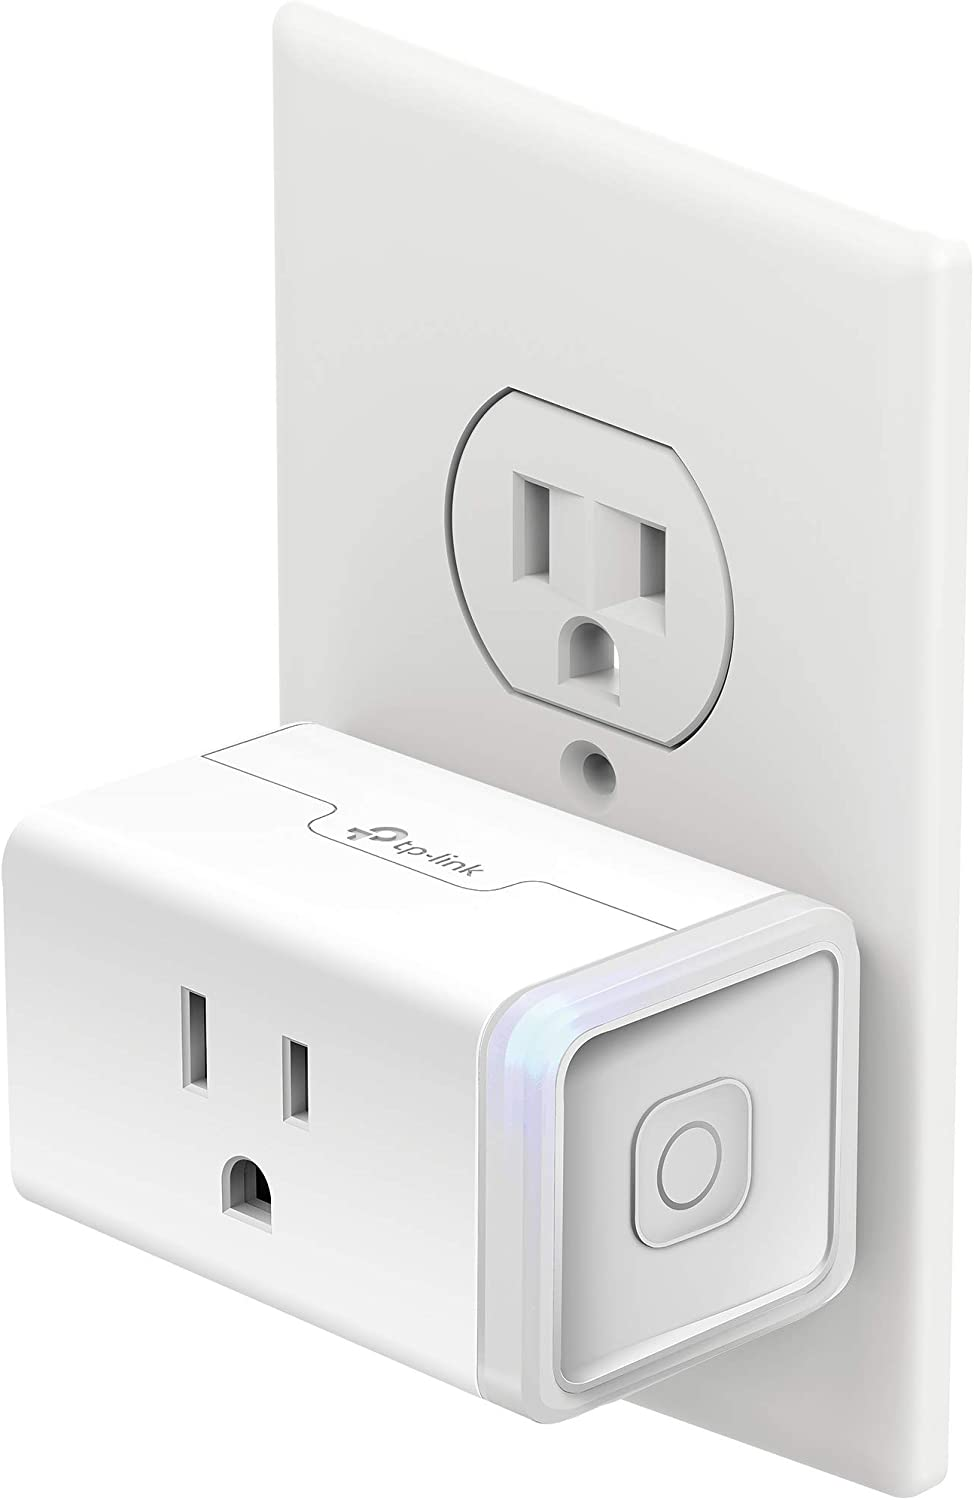 Kasa Smart Plug Mini with Energy Monitoring, Smart Home Wi-Fi Outlet Works with Alexa, Google Home &IFTTT, Wi-Fi Simple Setup, No Hub Required (KP115) , White